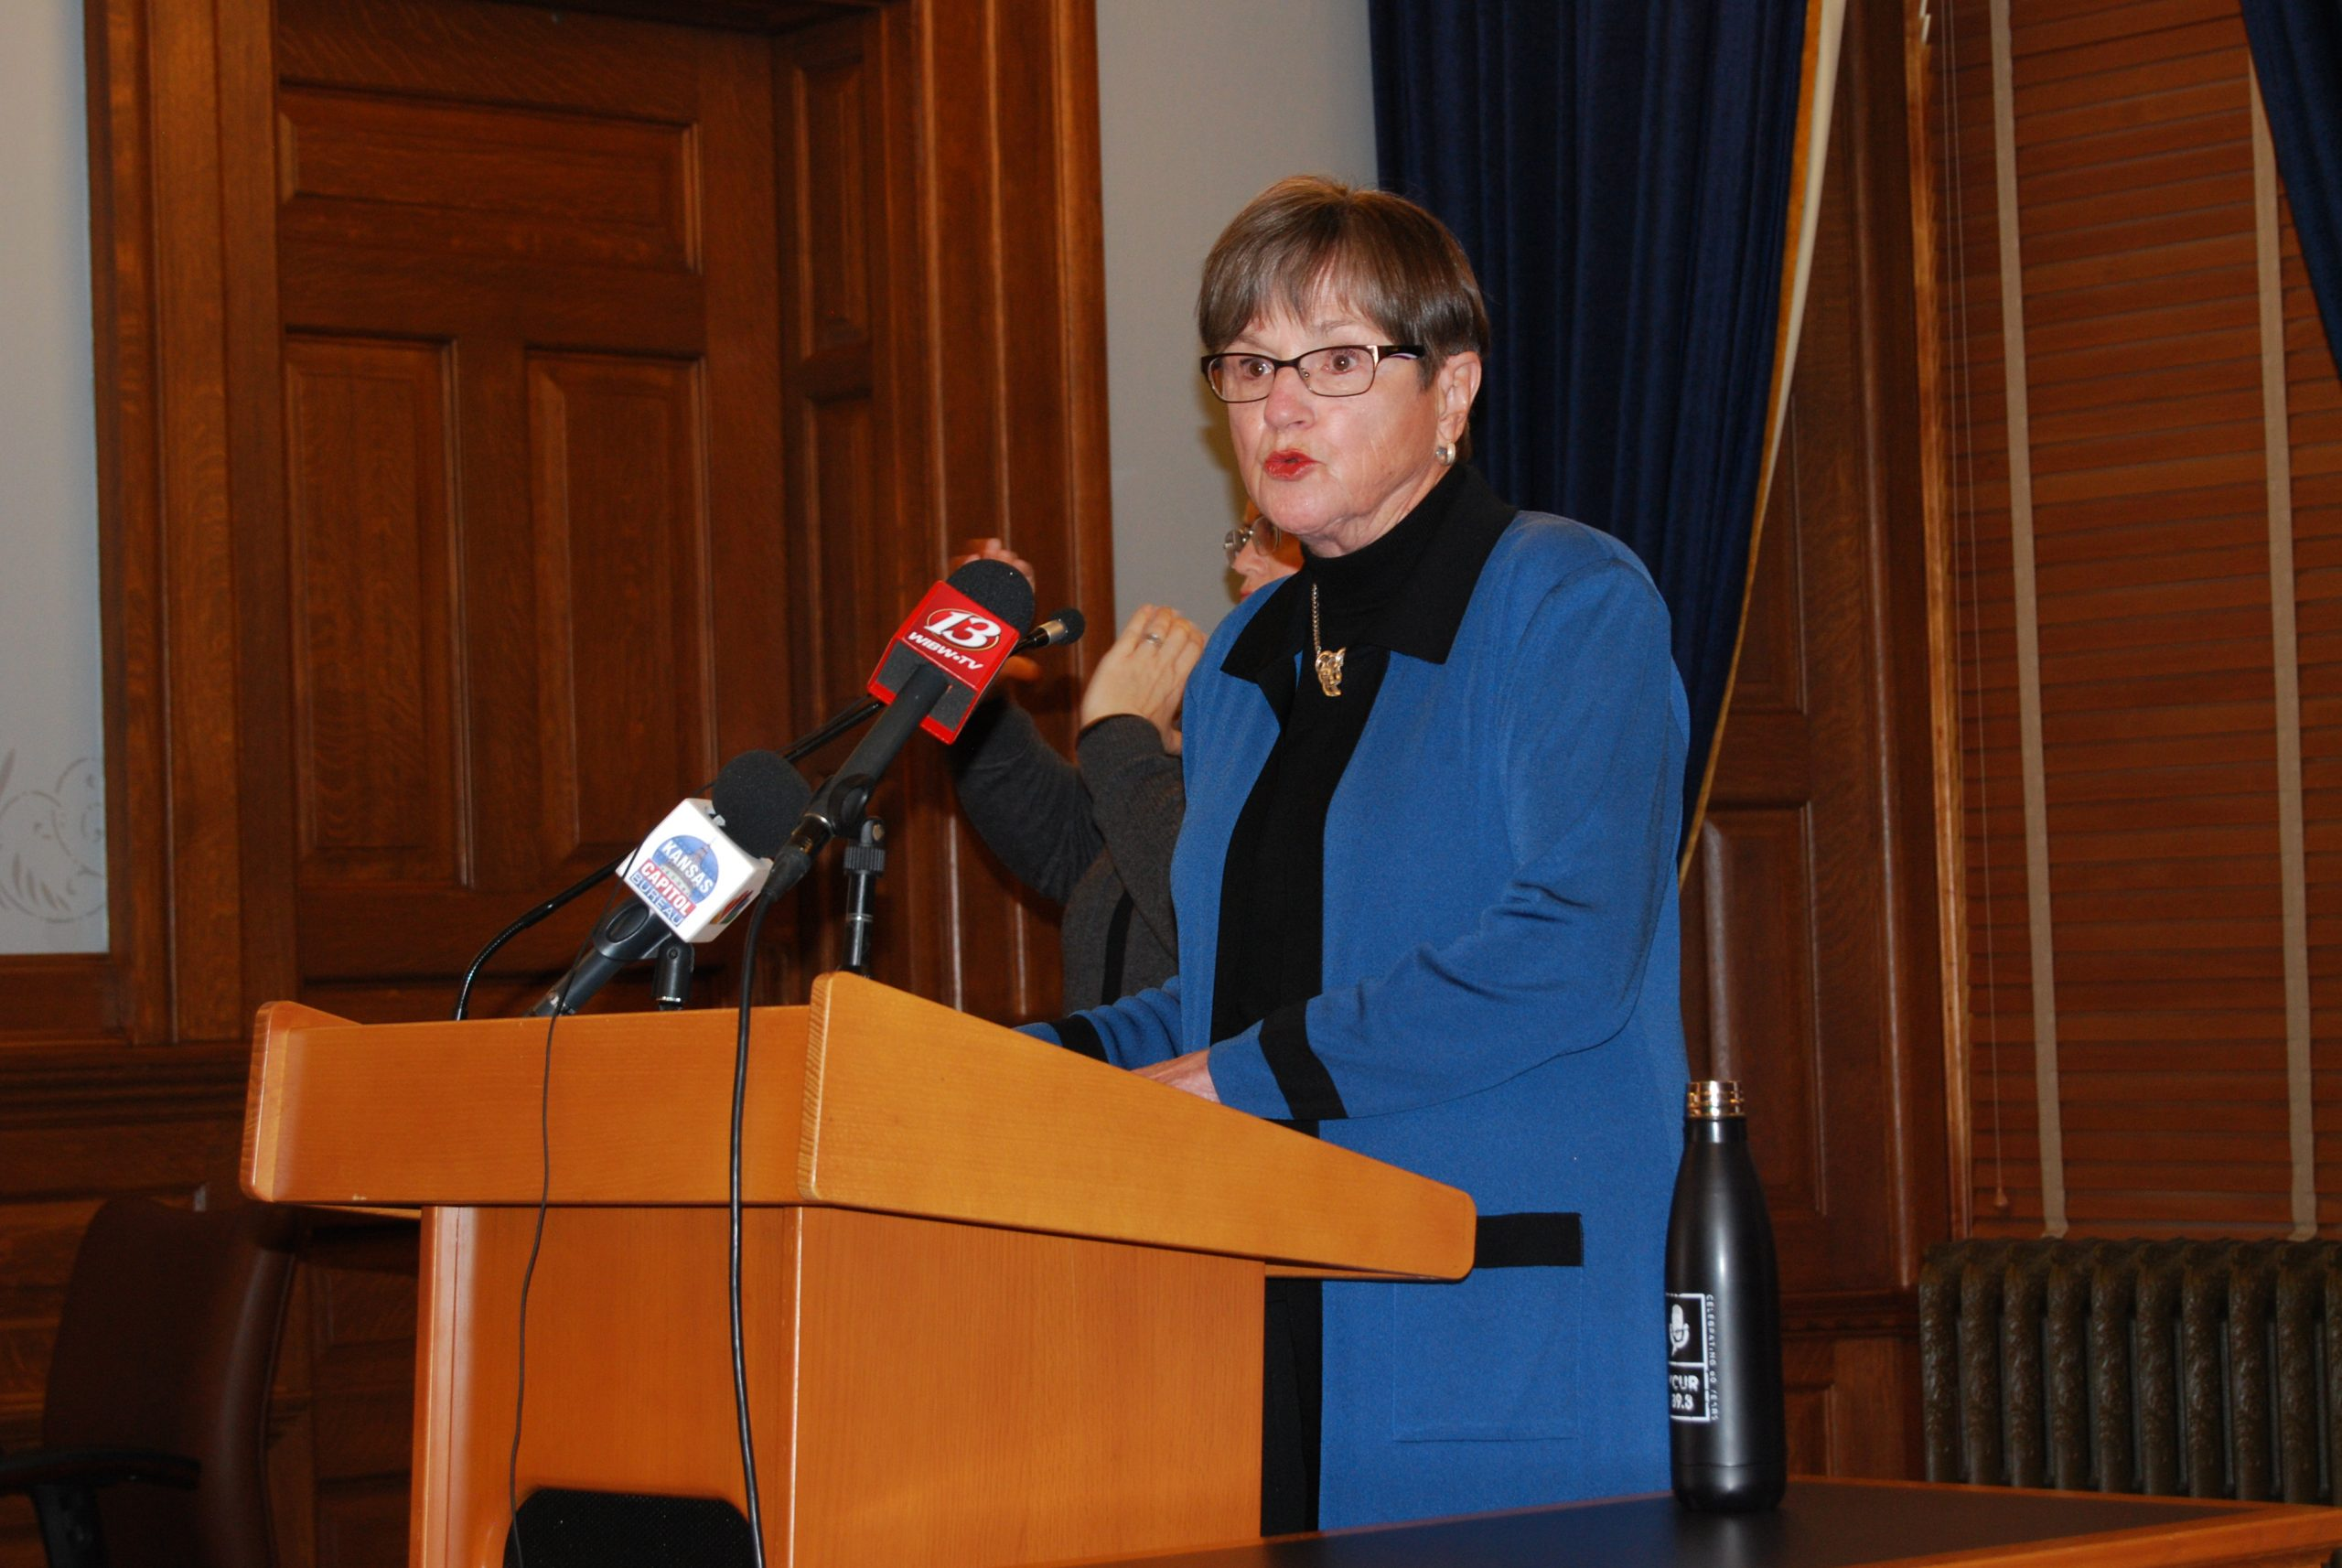 Gov. Laura Kelly is responding to the 2,400 average daily increase in new COVID-19 cases in Kansas with a public-service campaign to educate people about avoiding the virus and a $45 million surge in spending on a broader testing initiative. (Tim Carpenter/Kansas Reflector)